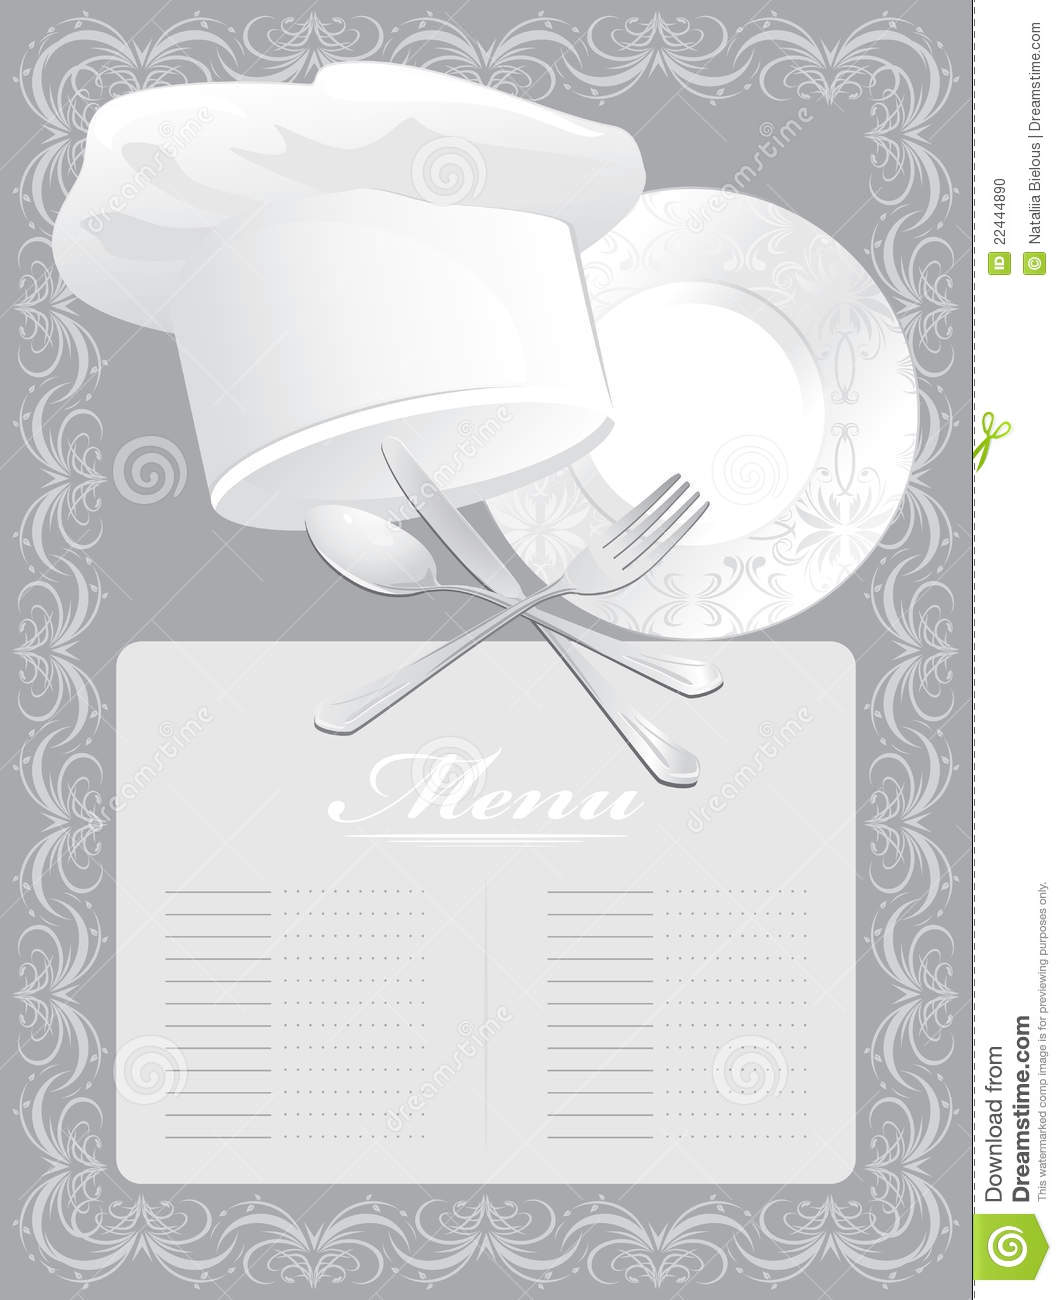 Blank For Menu Card Stock Photo - Image: 22444890